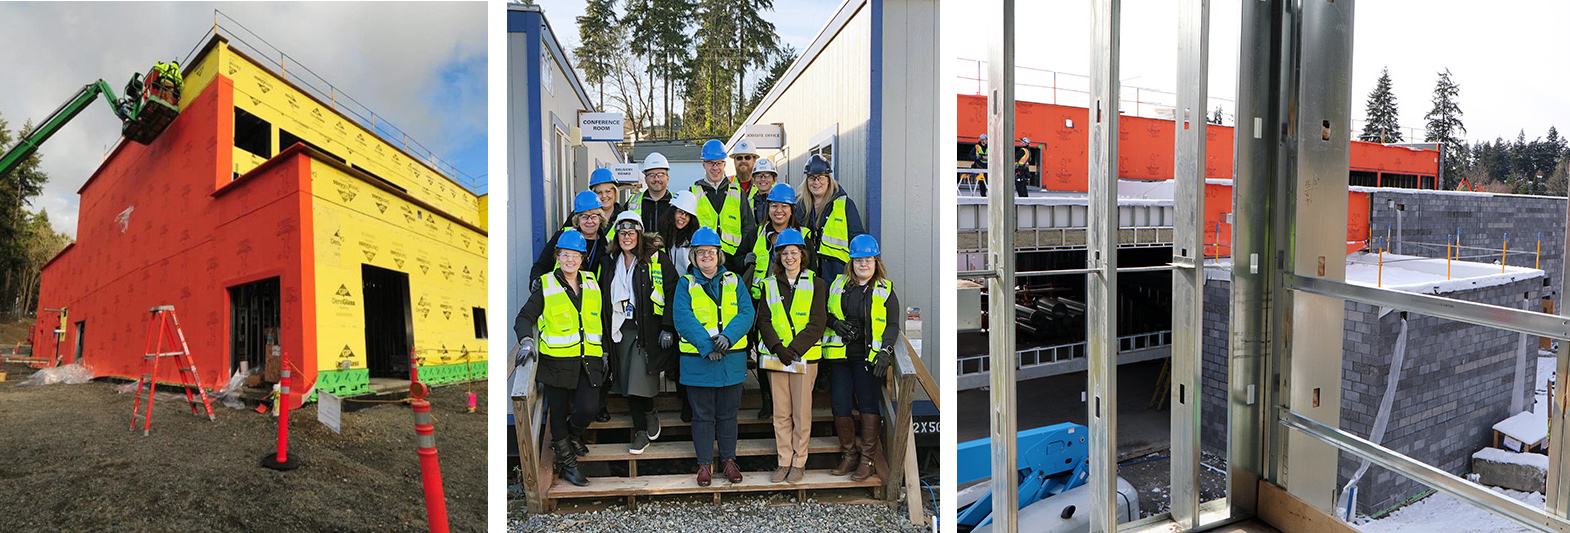 weatherproofing, staff tour, snow during construction